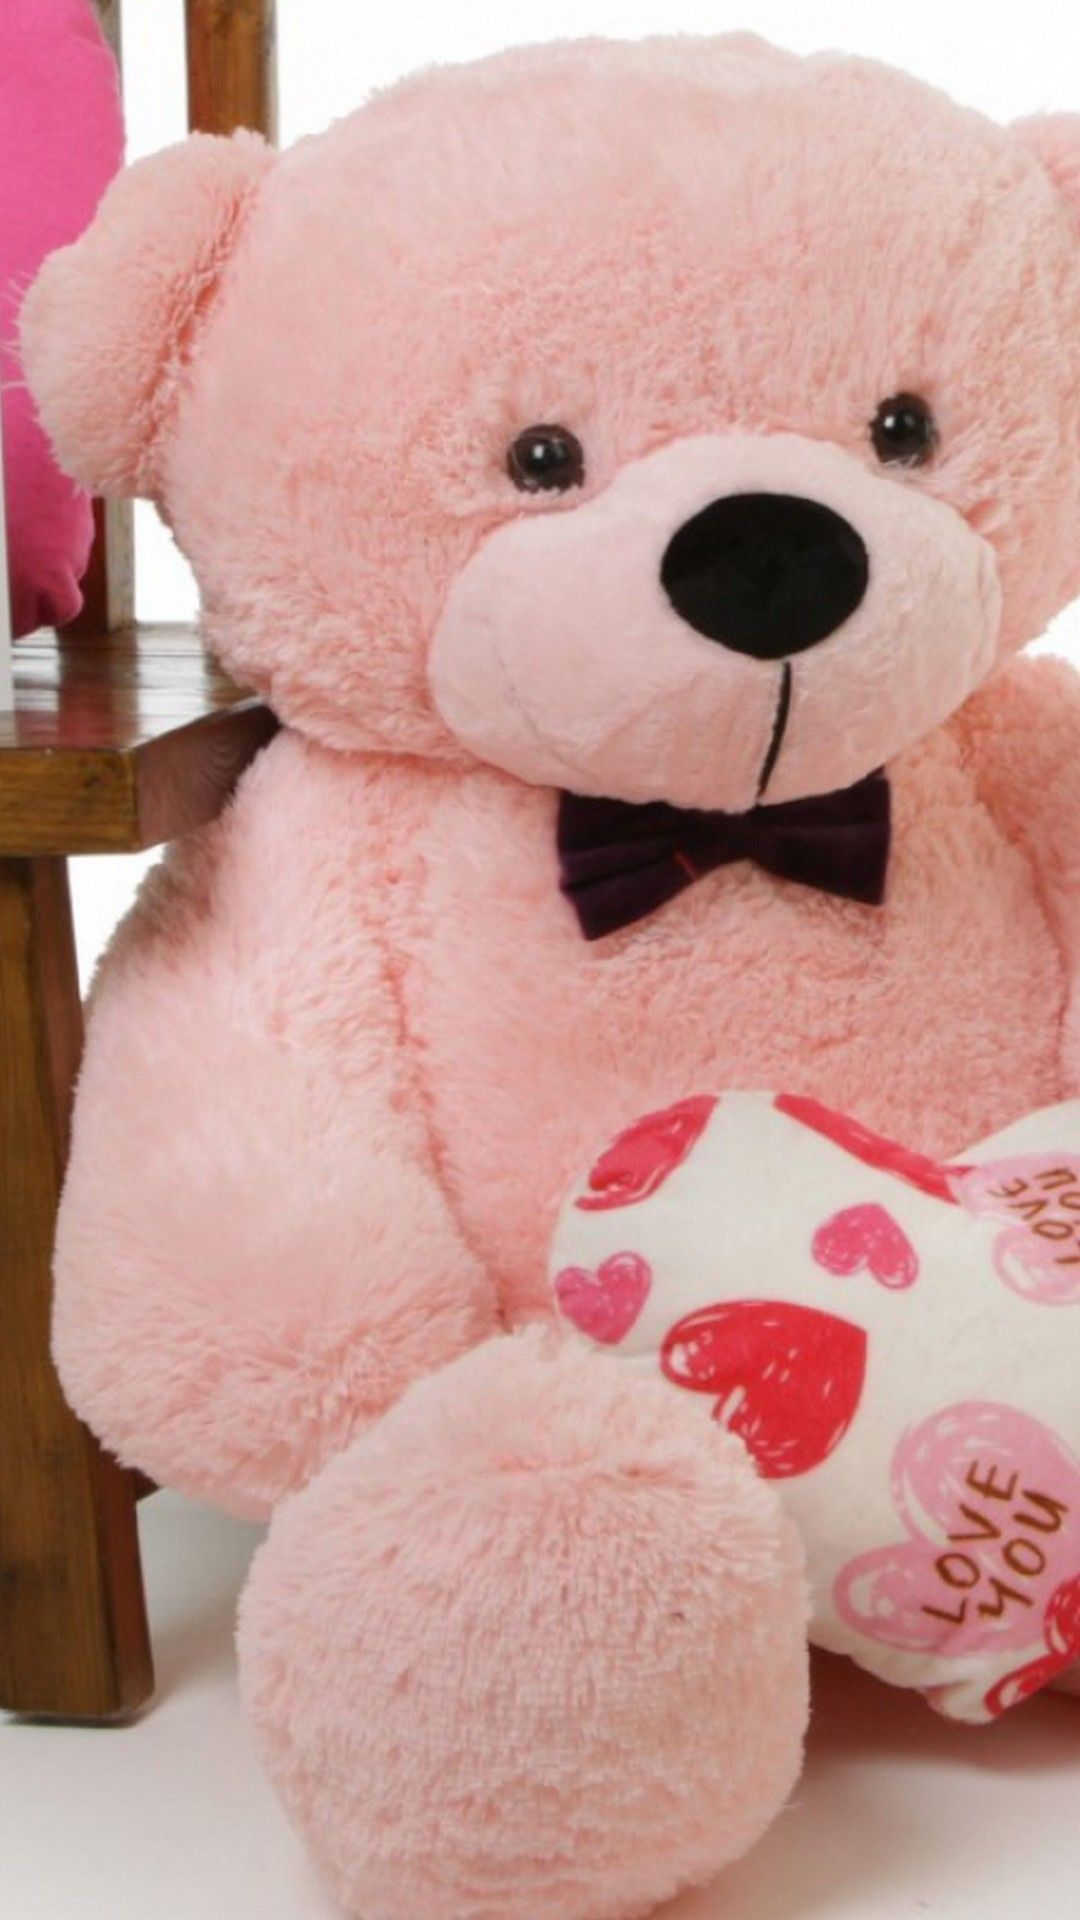 Android Wallpaper Cute Teddy Bear Best Android Wallpapers Cute